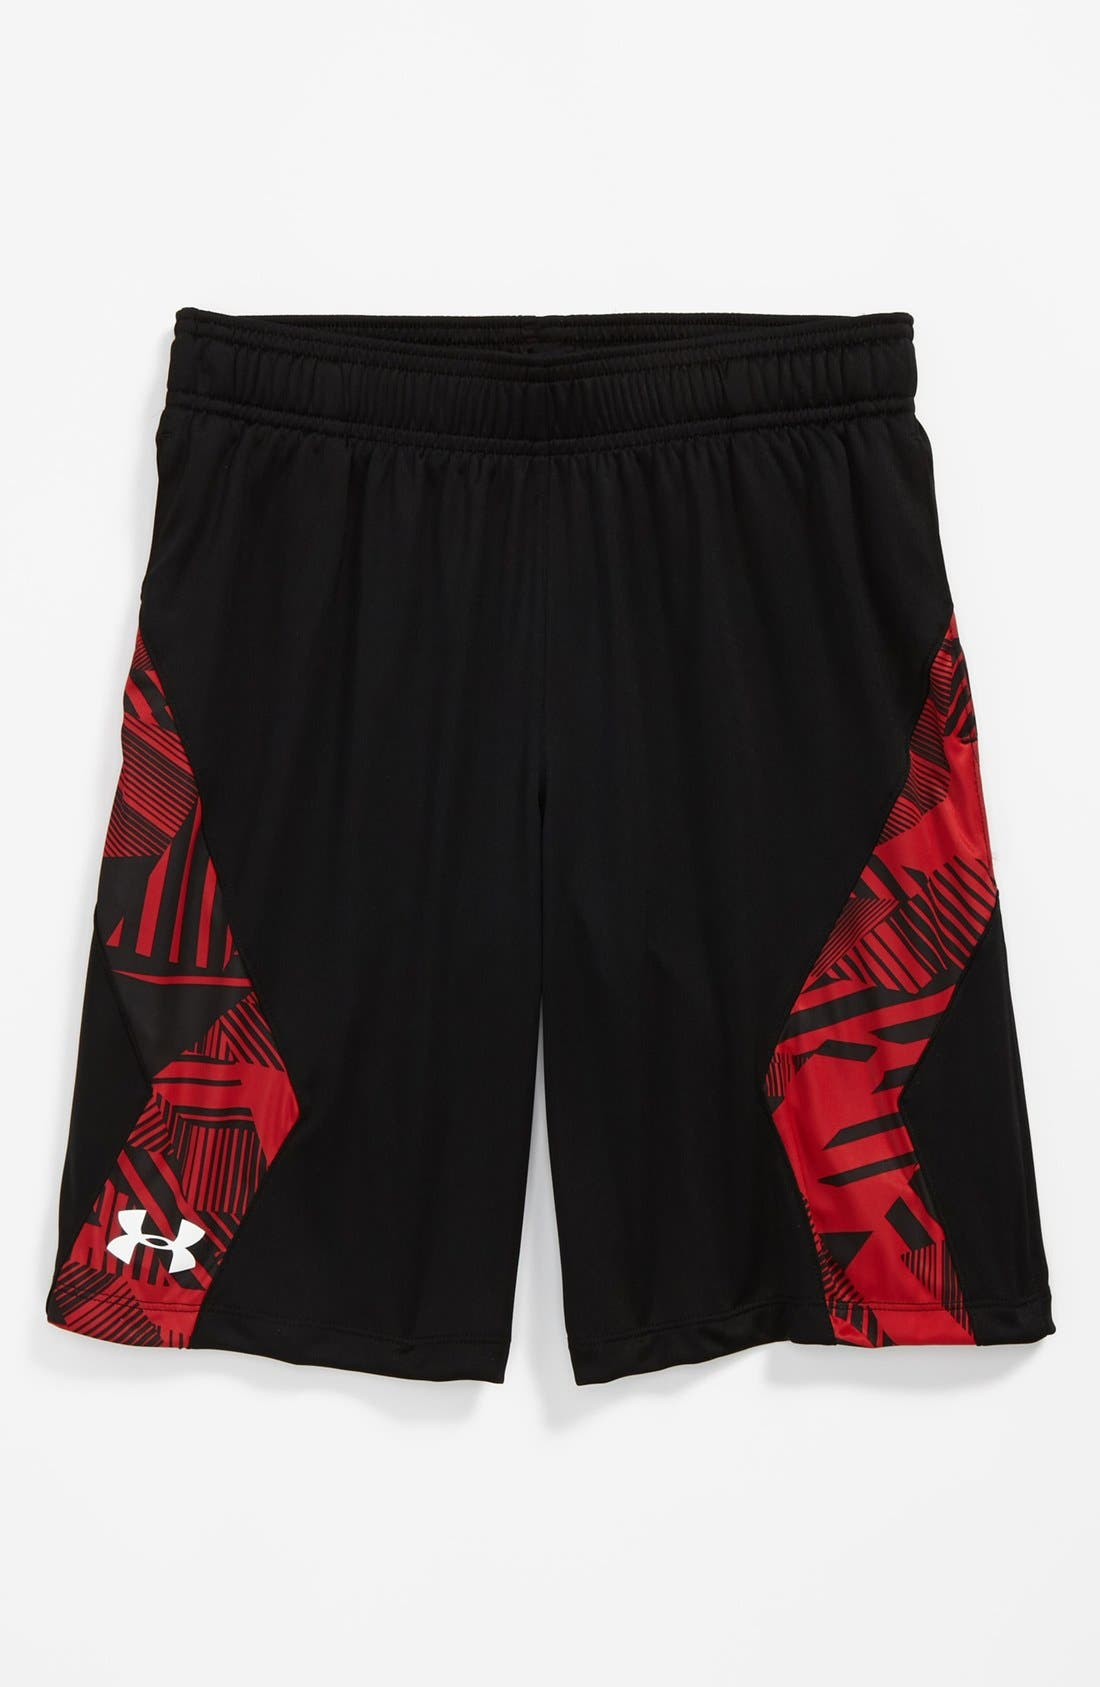 Alternate Image 1 Selected - Under Armour 'Domineer' Shorts (Big Boys)